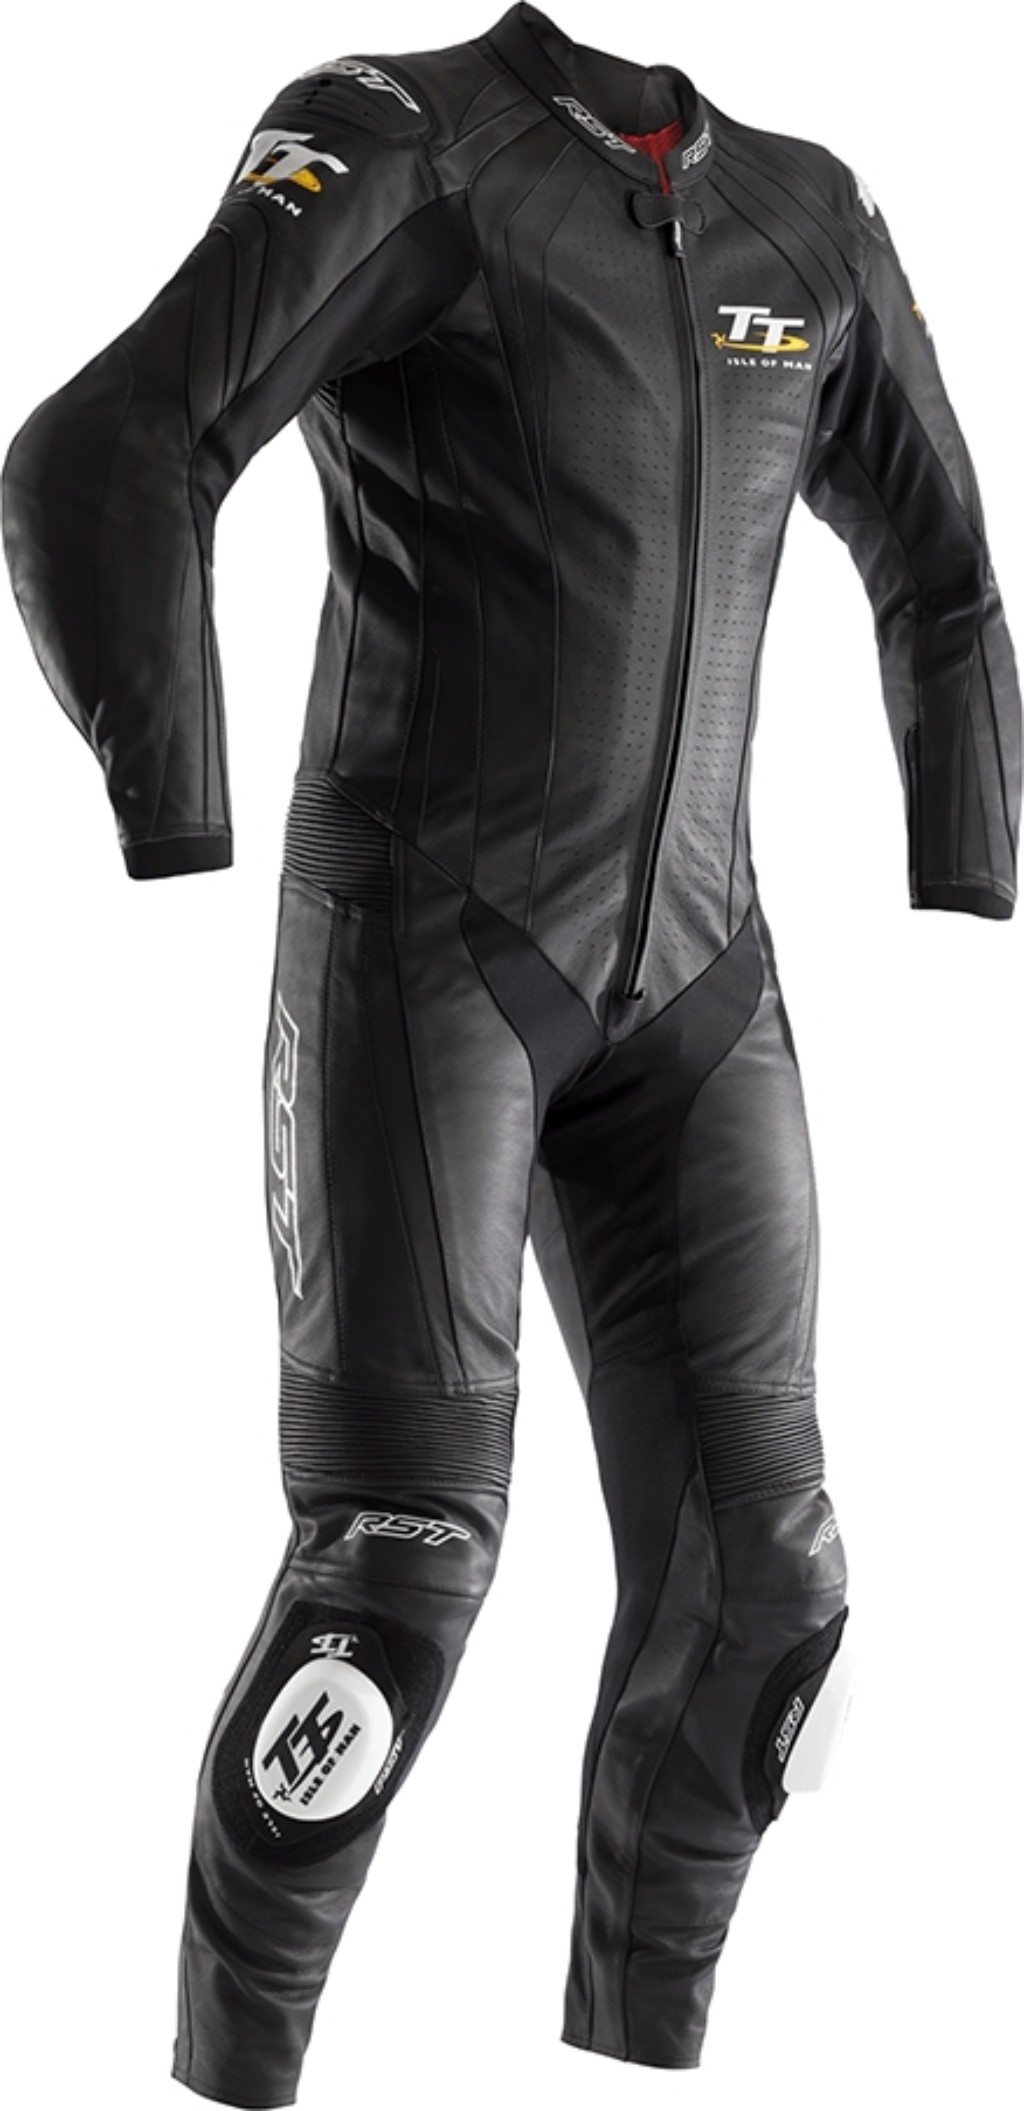 RST IOM TT Grandstand Leather One Piece Suit Racing Suit